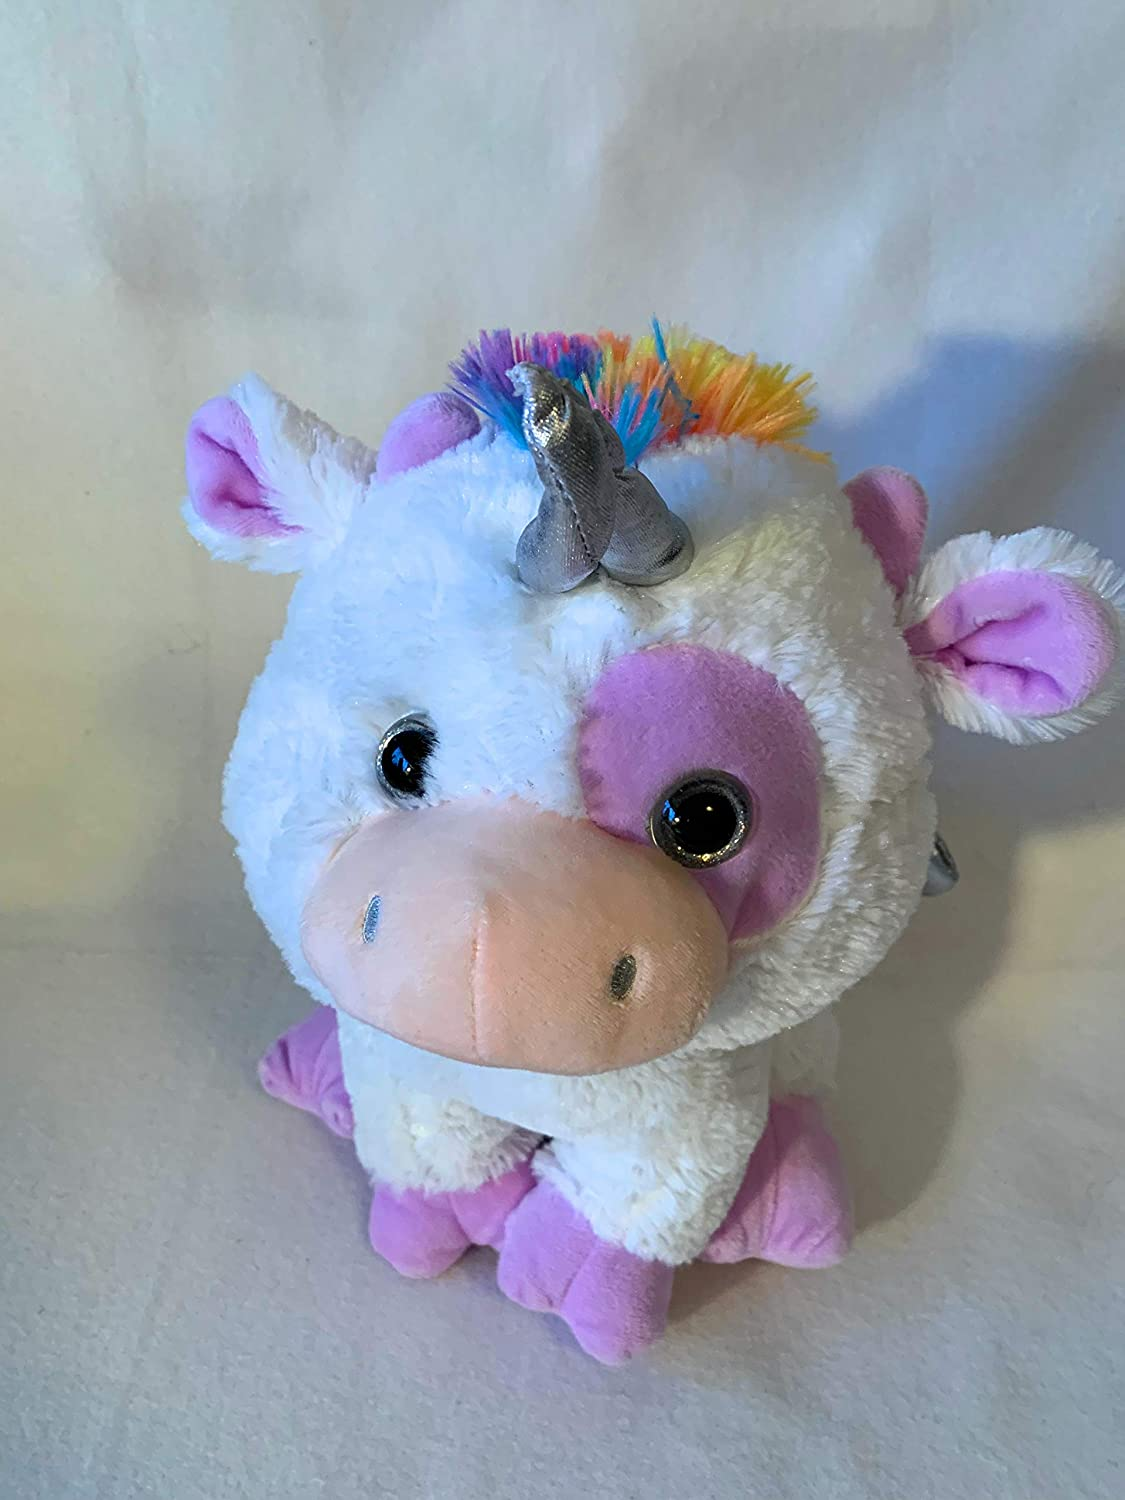 weighted unicorn with 3 lbs washable weighted buddy Weighted stuffed animal